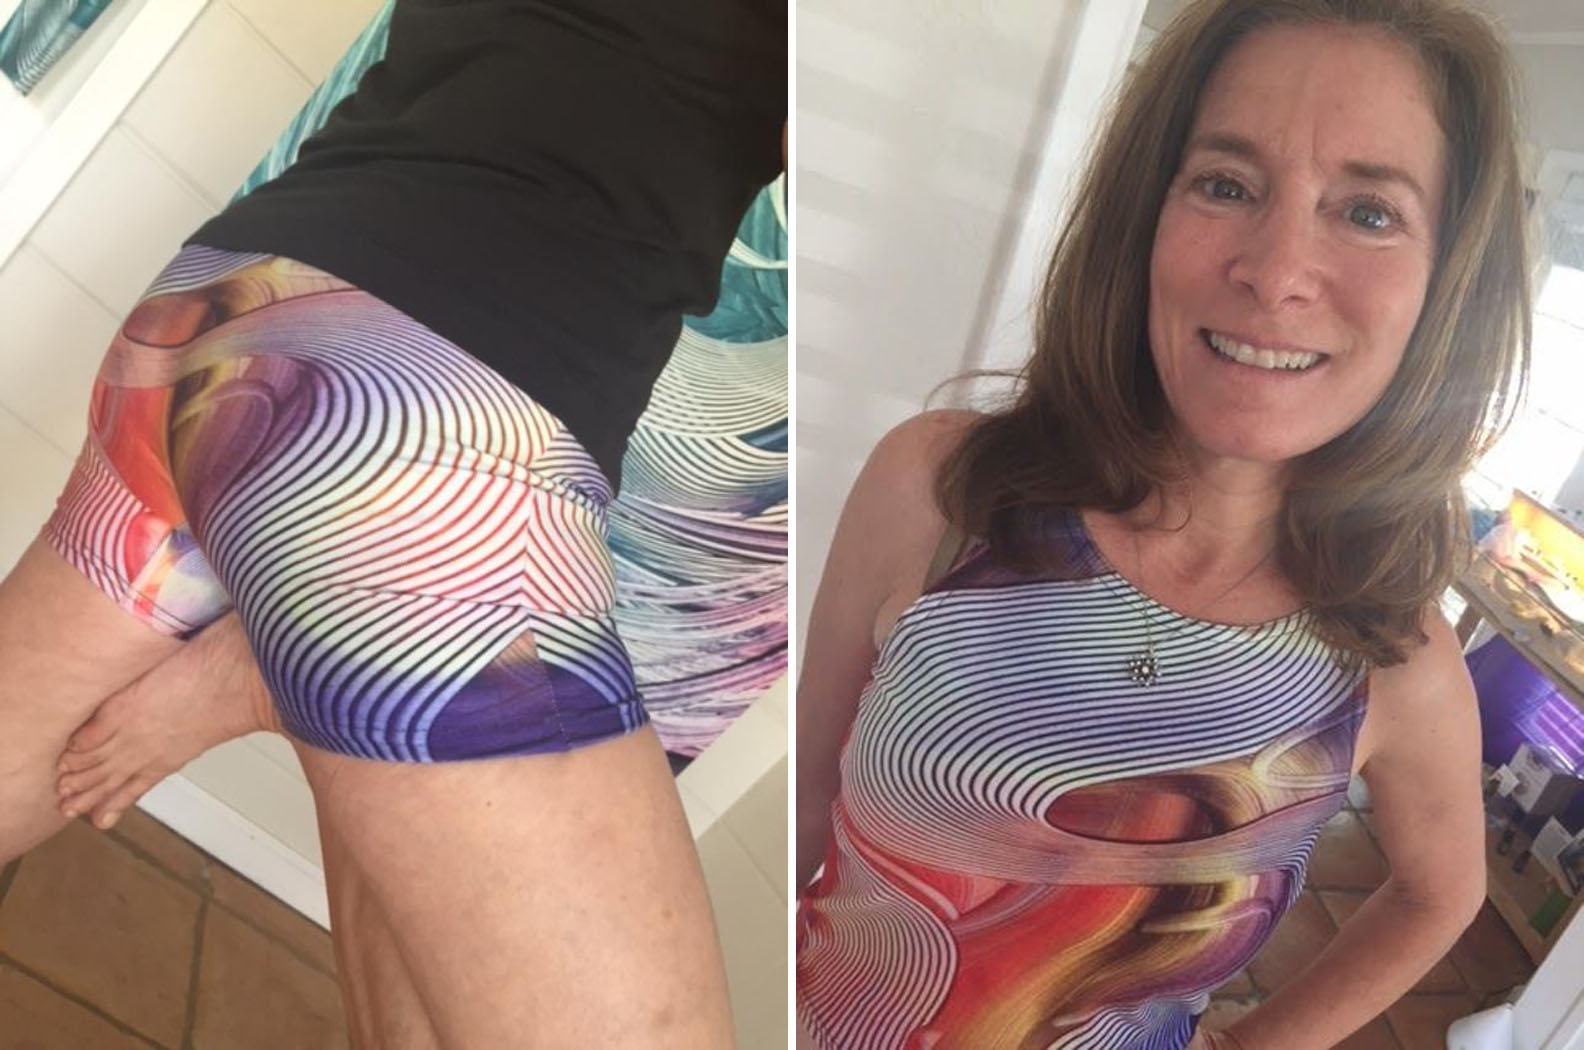 """Spirit Elevated - """"Your new line of inspirational athleisure-wear birthed from your stunning paintings elevates my spirit.""""- Stacy wearing the Empower Crop Top and Shorts"""